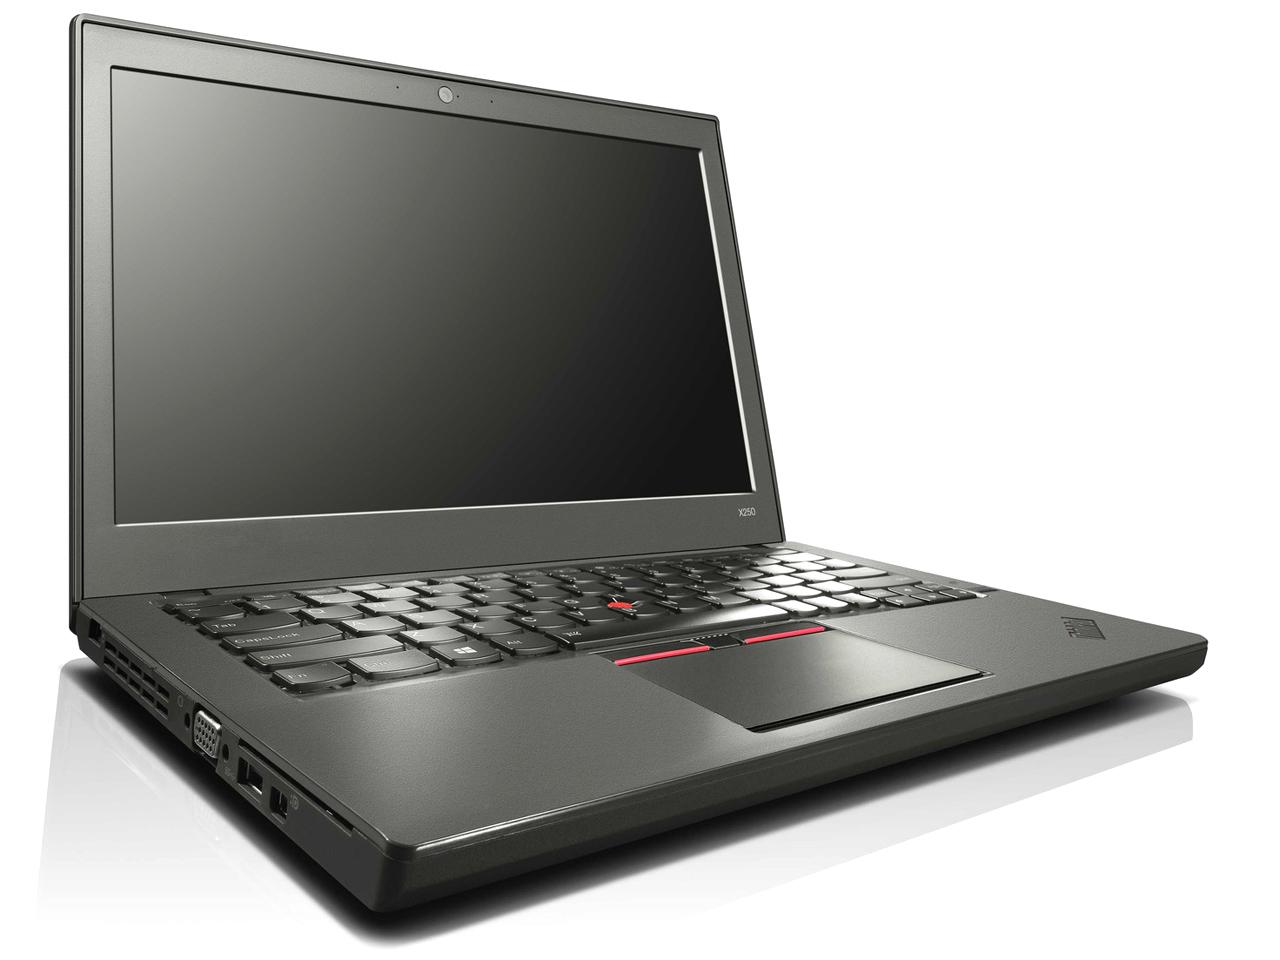 (Refurbished) Lenovo ThinkPad X250 - 12.5  - Core i5 5300U - 8GB - 480GB SSD - Windows 10 Pro 64 Bit - Dual Battery ( Internal & External ) - *FREE Pre-Installed Anti Virus (Trend Micro Internet Security 2019) (1 device) 12mth